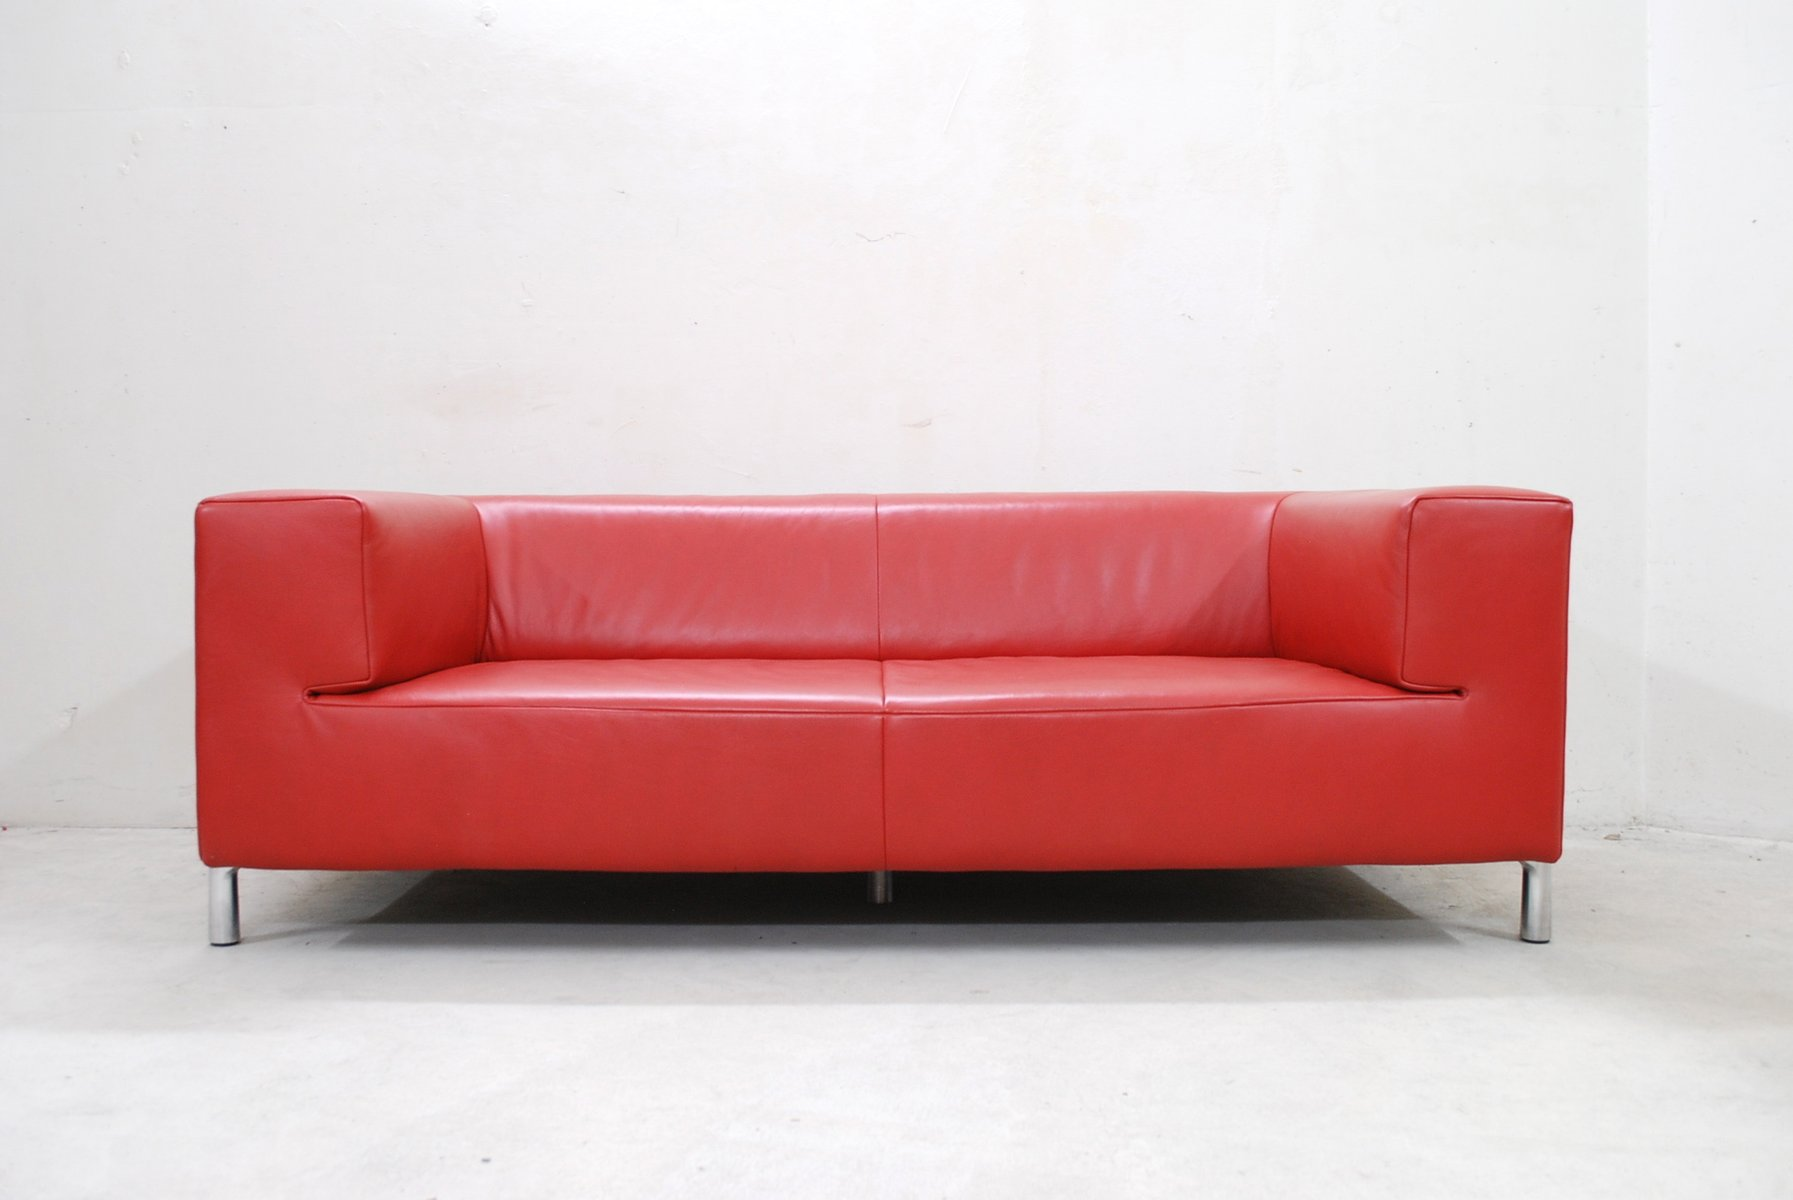 Vintage Red Leather Genesis Sofa From Koinor